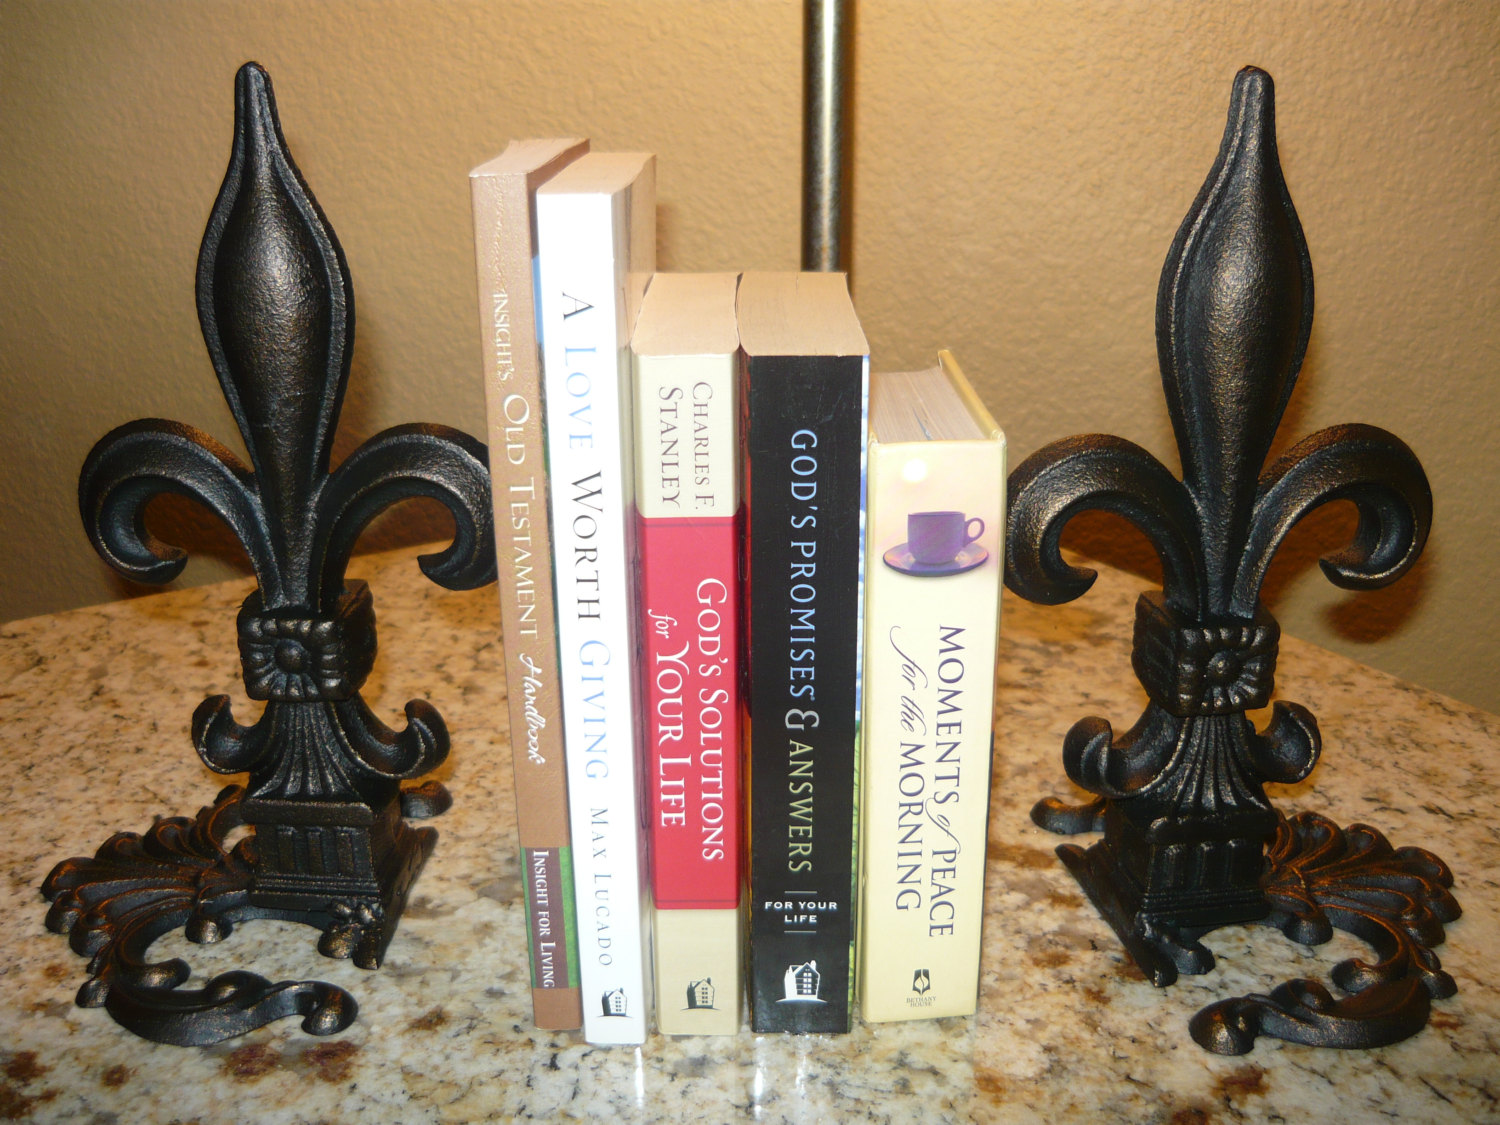 Cheap Fleur De Lis Home Decor Set Of 2 Iron Fleur De Lis Bookends Old World Tuscan